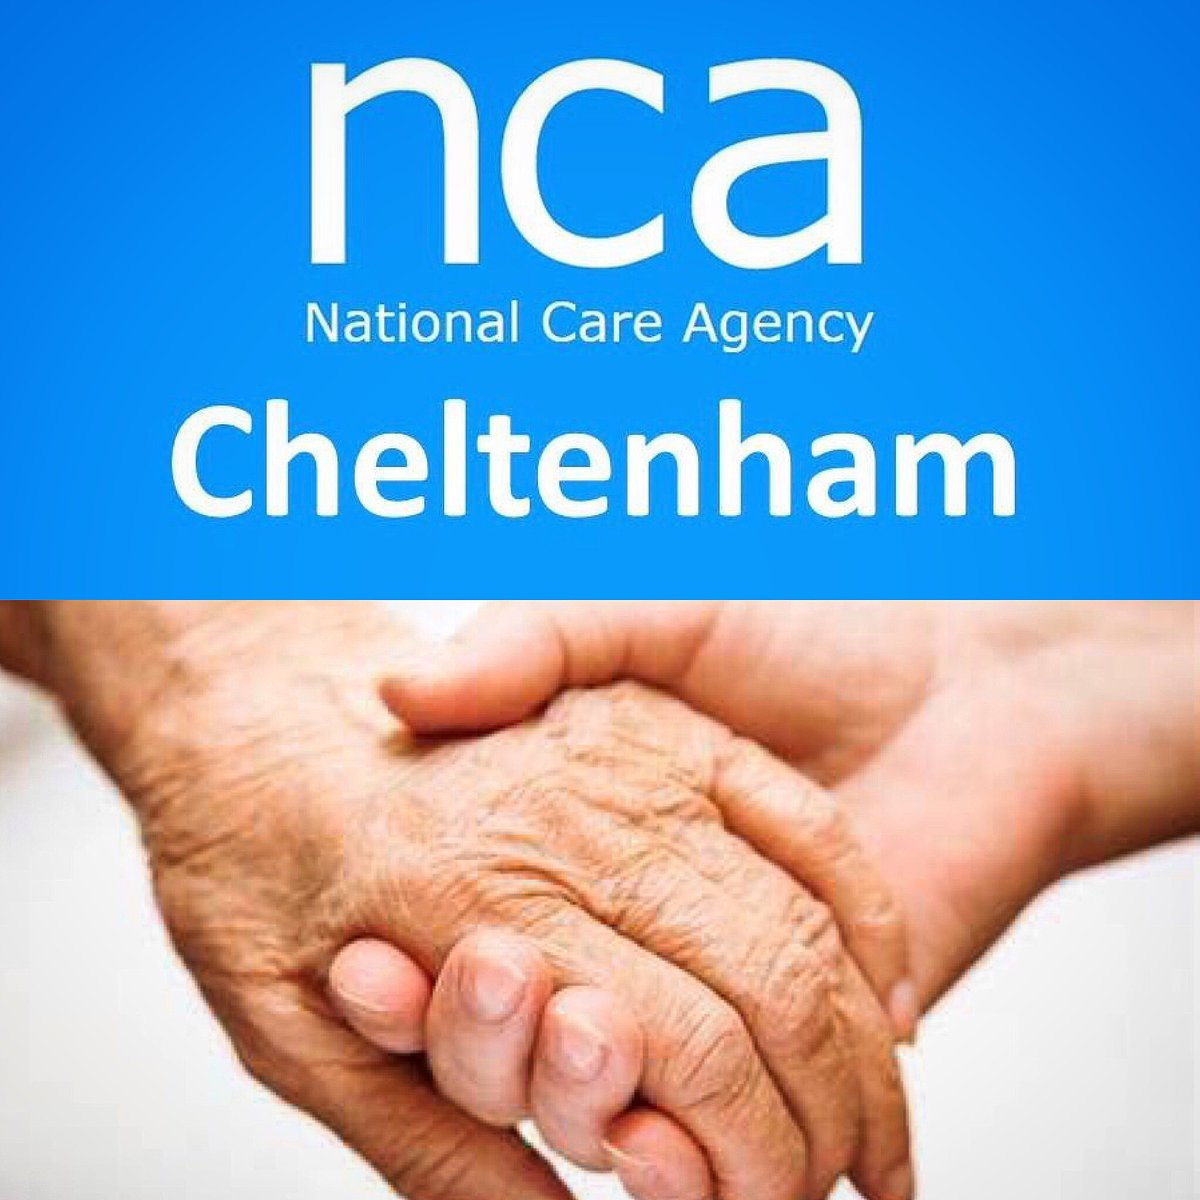 We are currently recruiting experienced health care assistants to join our team for our prestegious client in the Cheltenham area. Are you looking for a positive change, shift flexibility and excellent rates of pay?! Contact NCA today!! #recuitment #healthcare #carers #cheltenham https://t.co/hyZJ8iKIPE